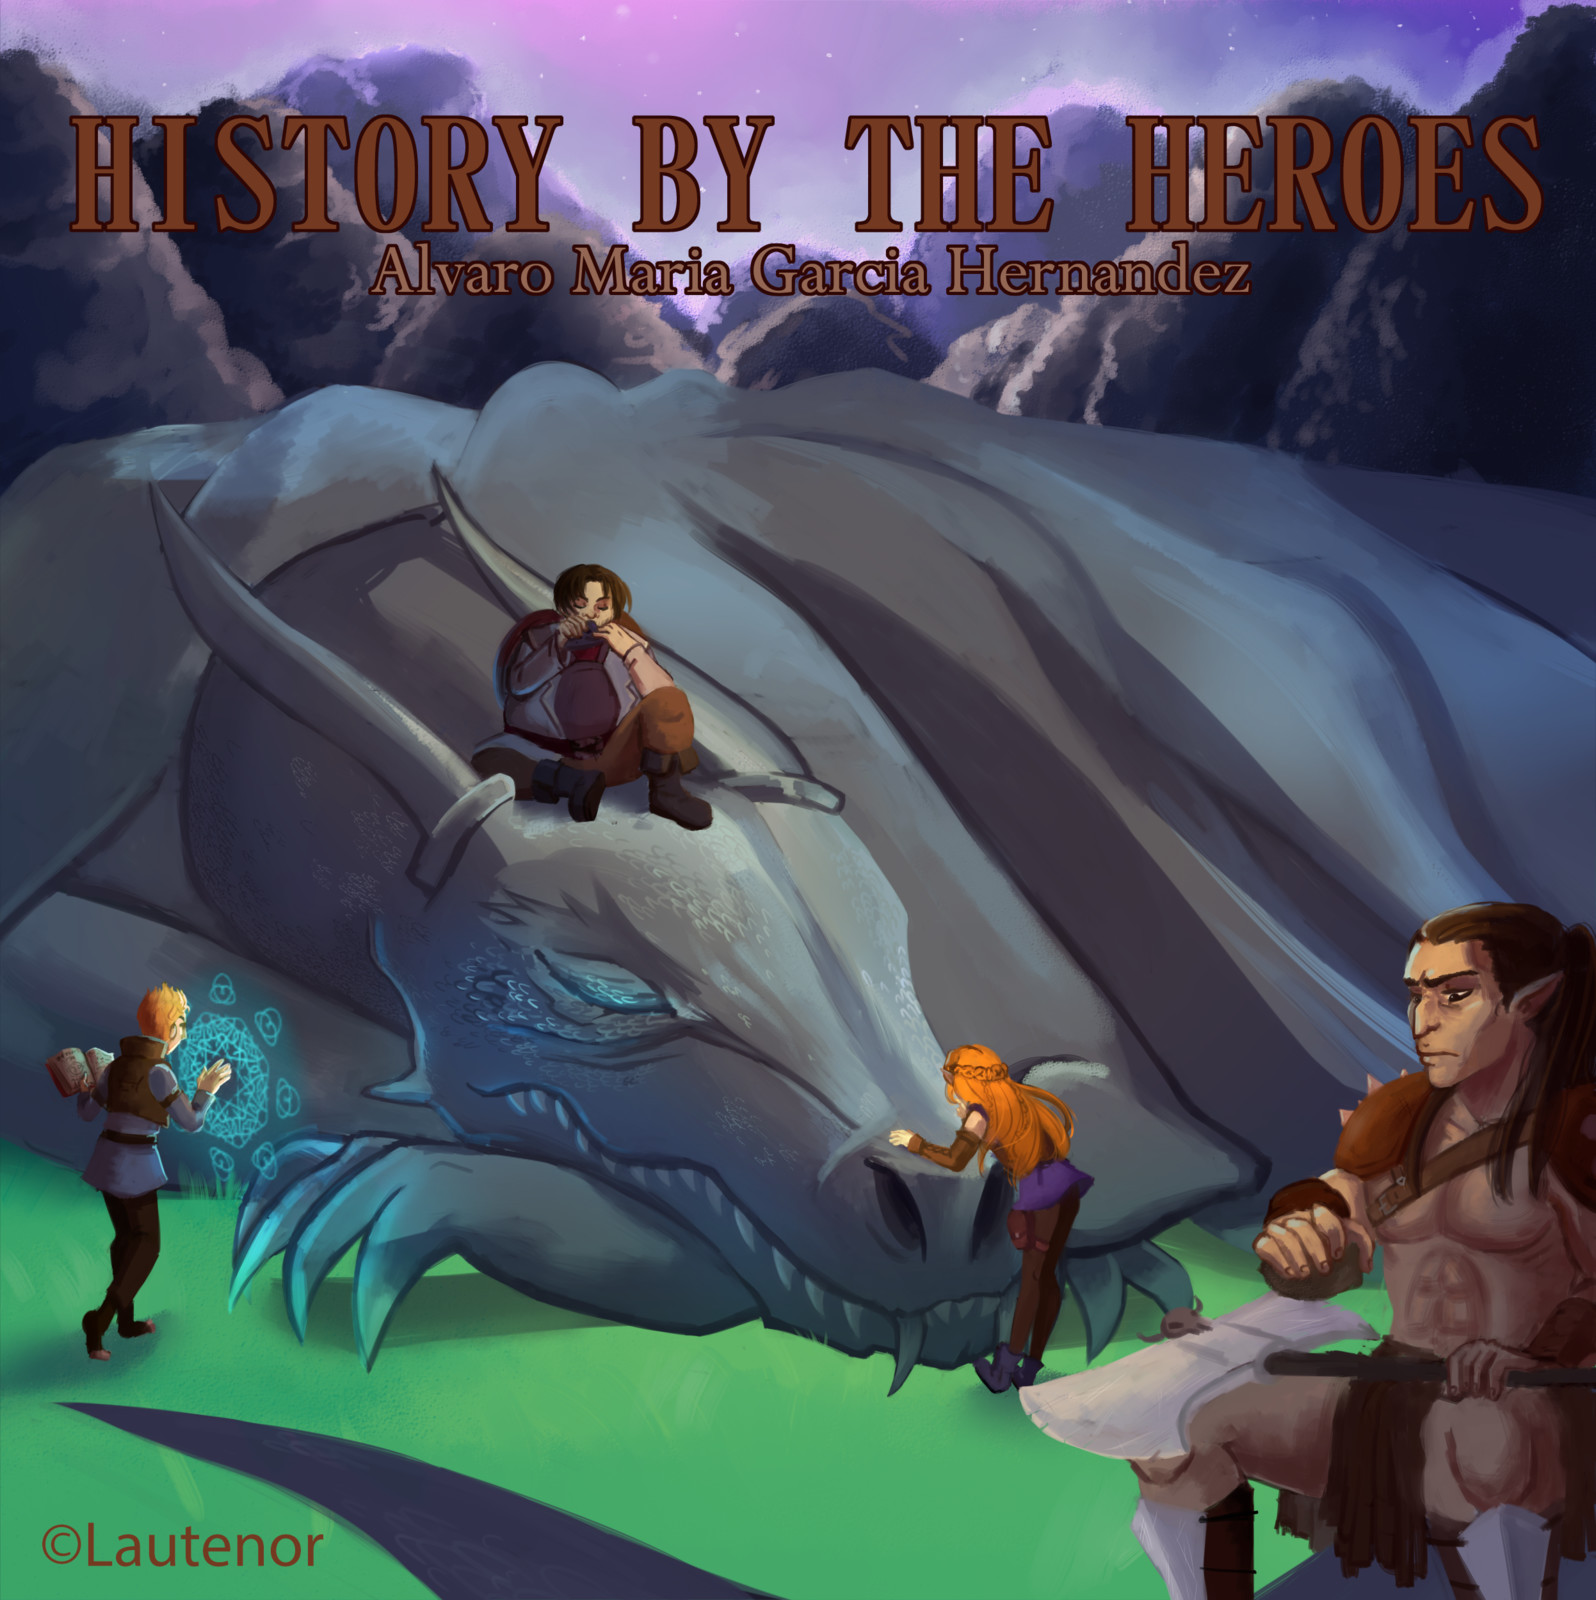 History by the Heroes, album cover for Lautenor https://archive.org/details/History_by_the_heroes/All_enemies_All_friends.mp3